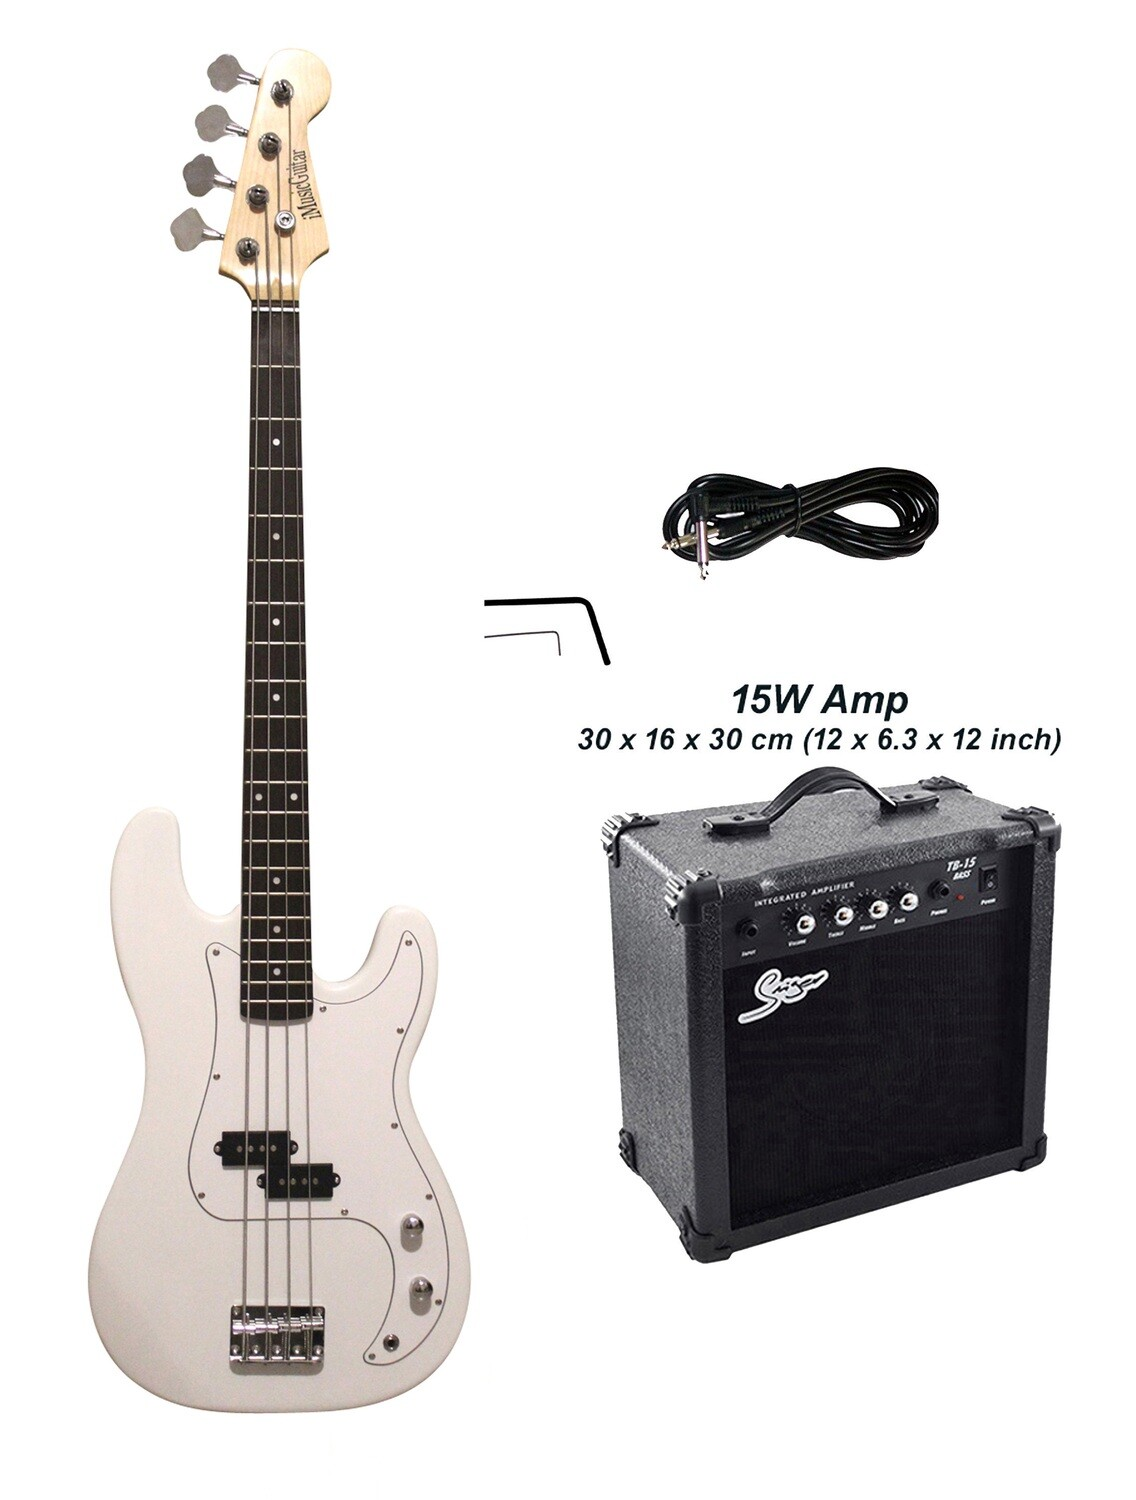 Bass Guitar with 15W Amp Package 4 String P style White for Beginners iMEB872PKT